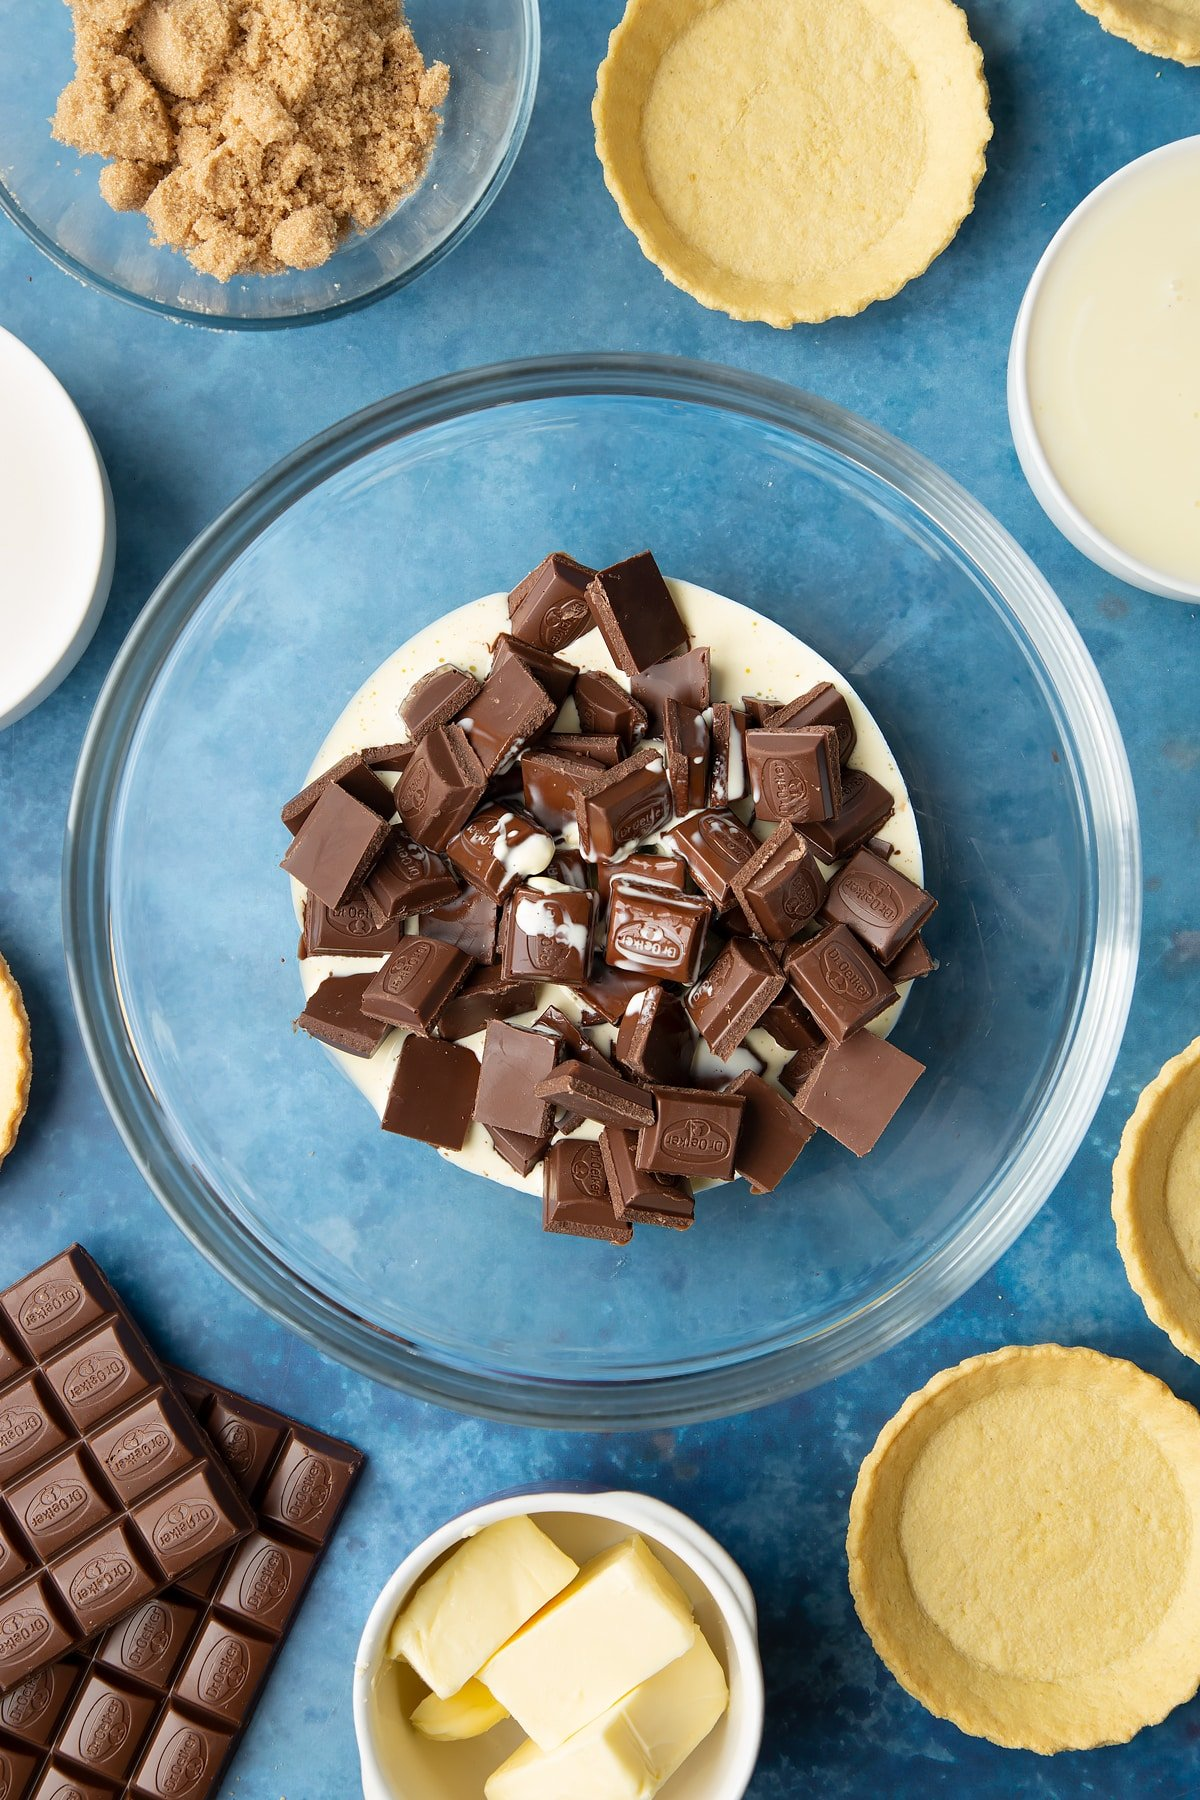 Broken up milk chocolate and heated cream in a large mixing bowl. Ingredients to make mini chocolate tarts surround the bowl.